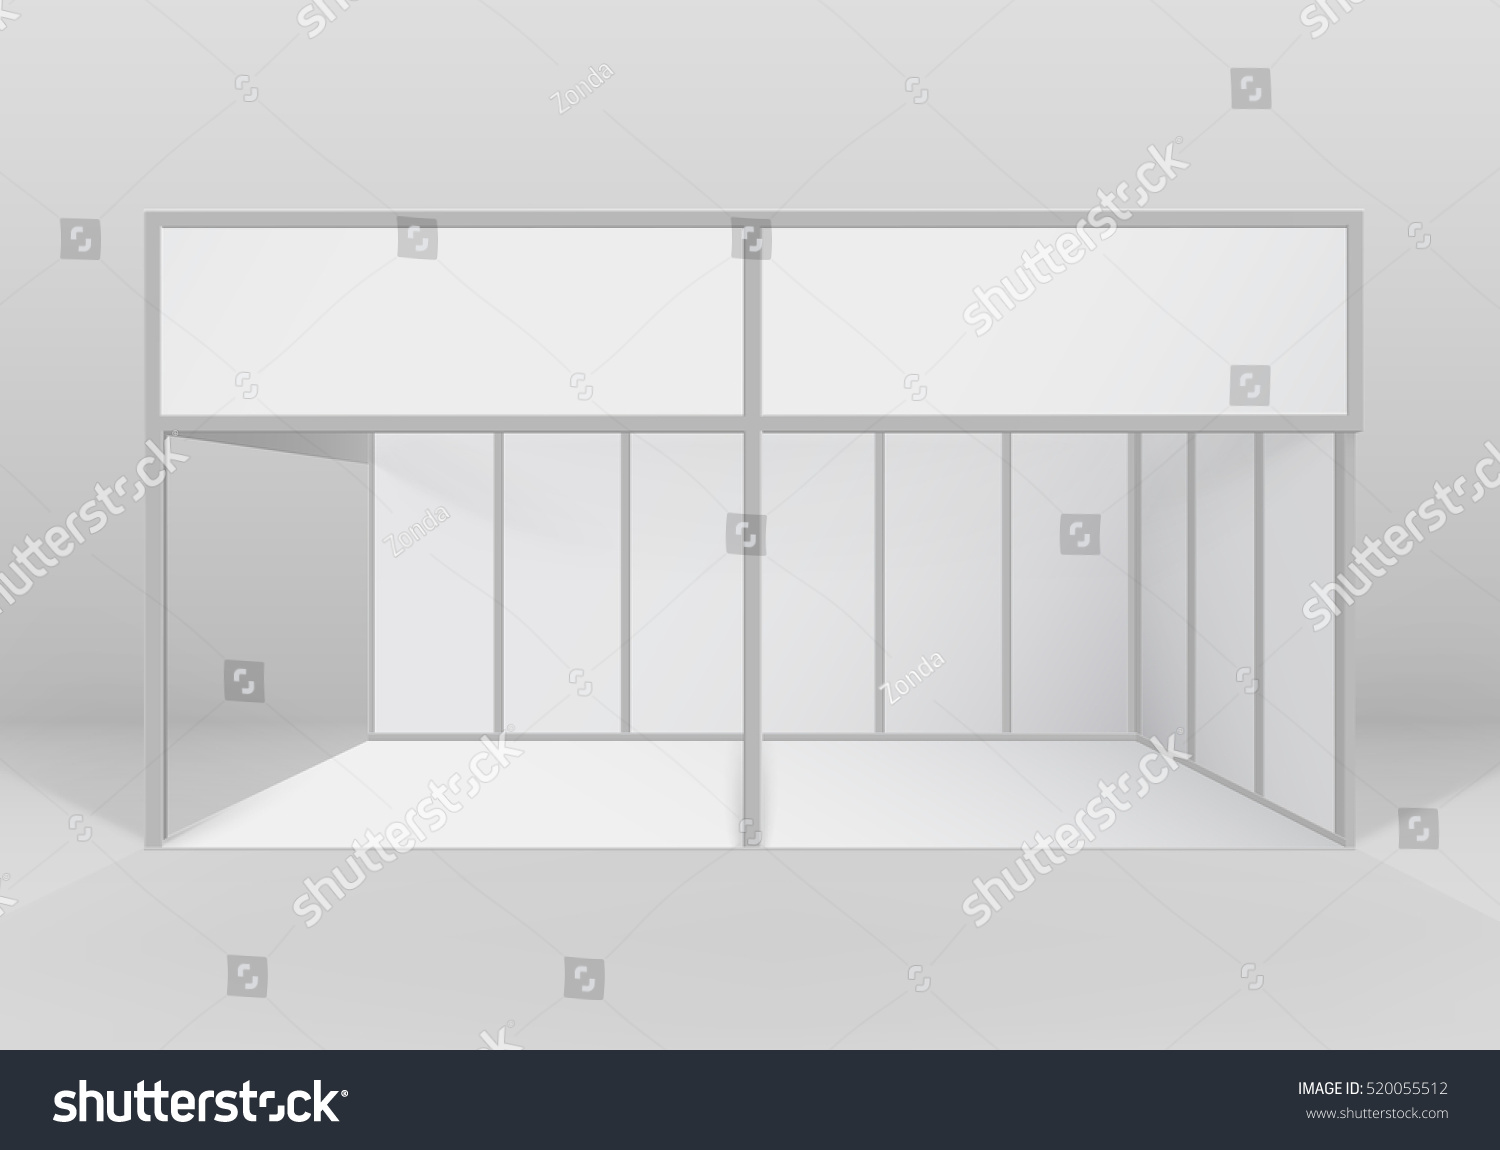 Trade Exhibition Stand Mockup Free Download : Vector white blank indoor trade exhibition stock